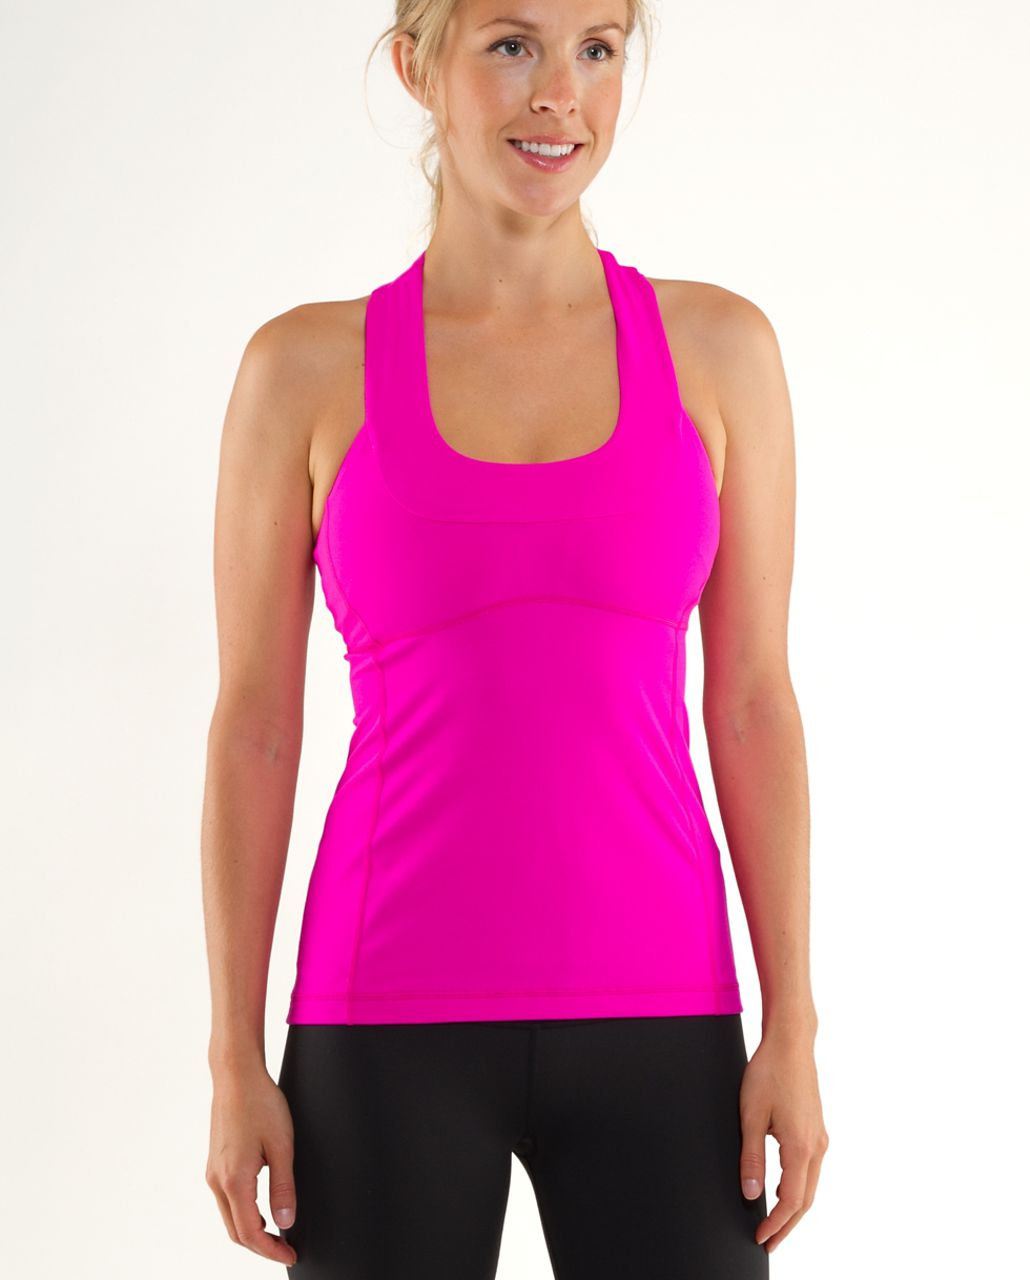 Lululemon Scoop Neck Tank - Paris Pink